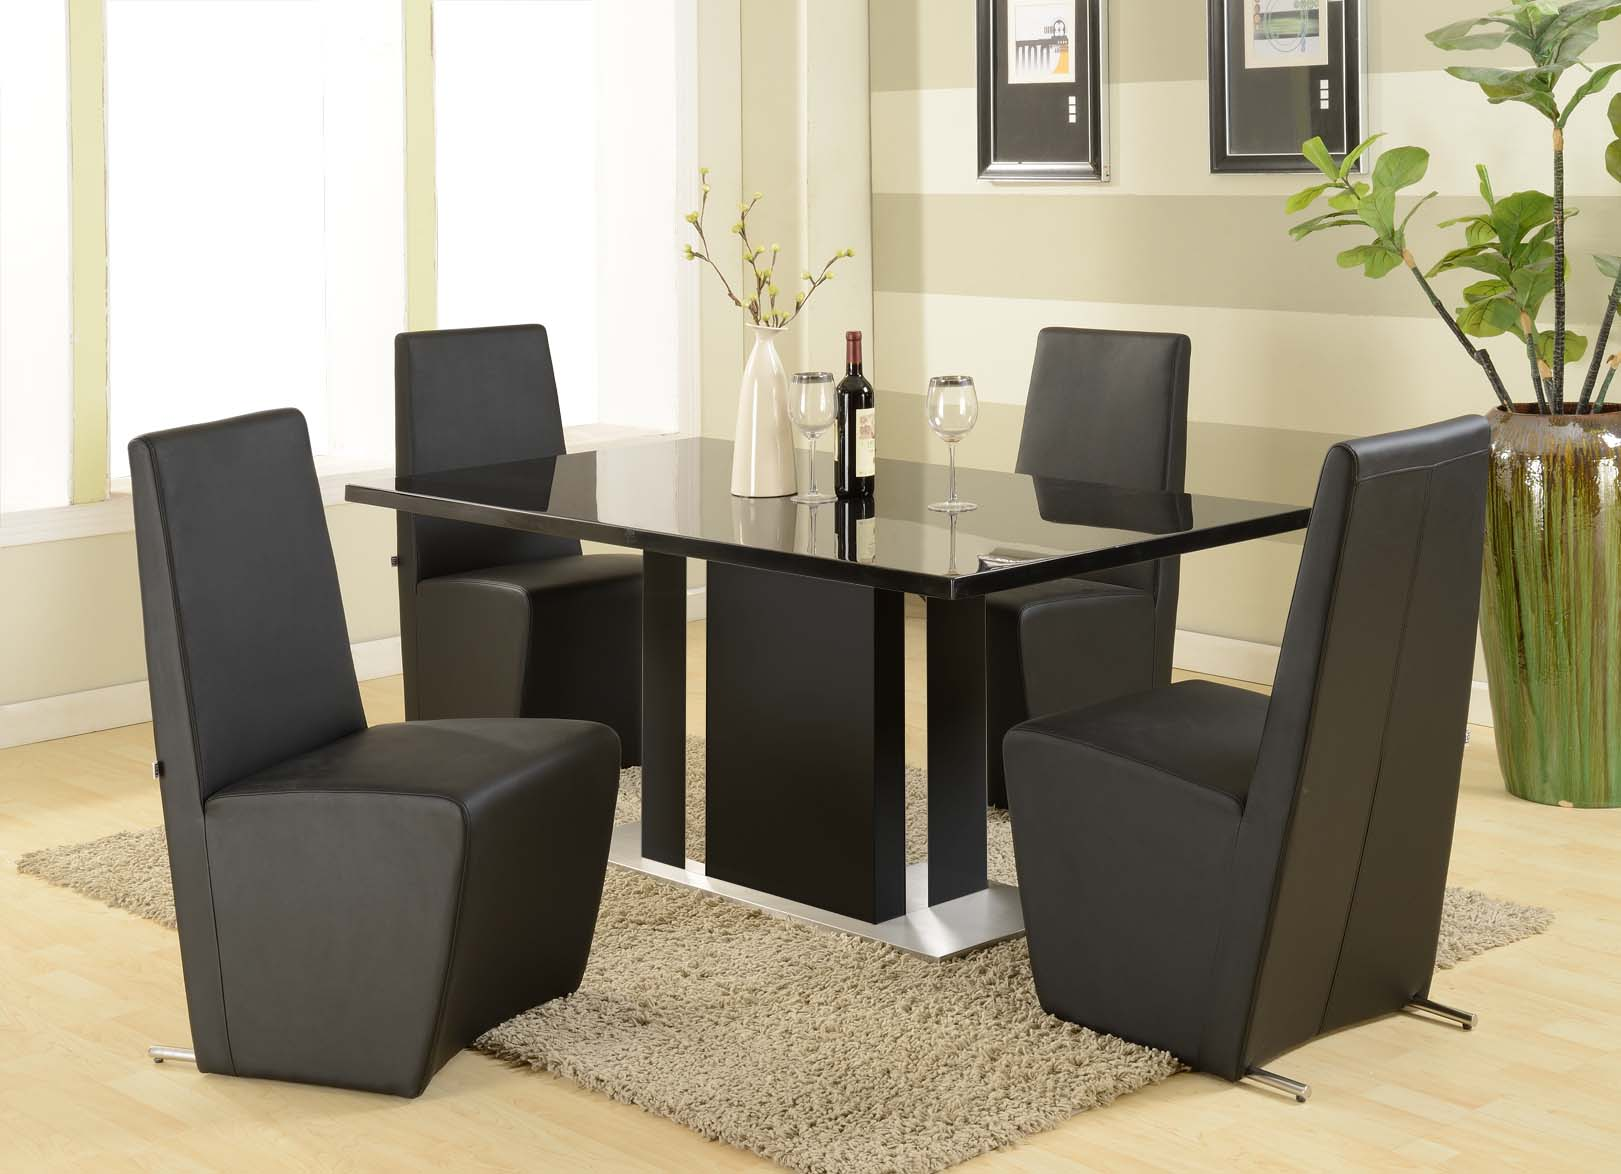 wooden kitchen chairs with arms kitchen chairs with arms Wooden kitchen chairs with arms Photo 6